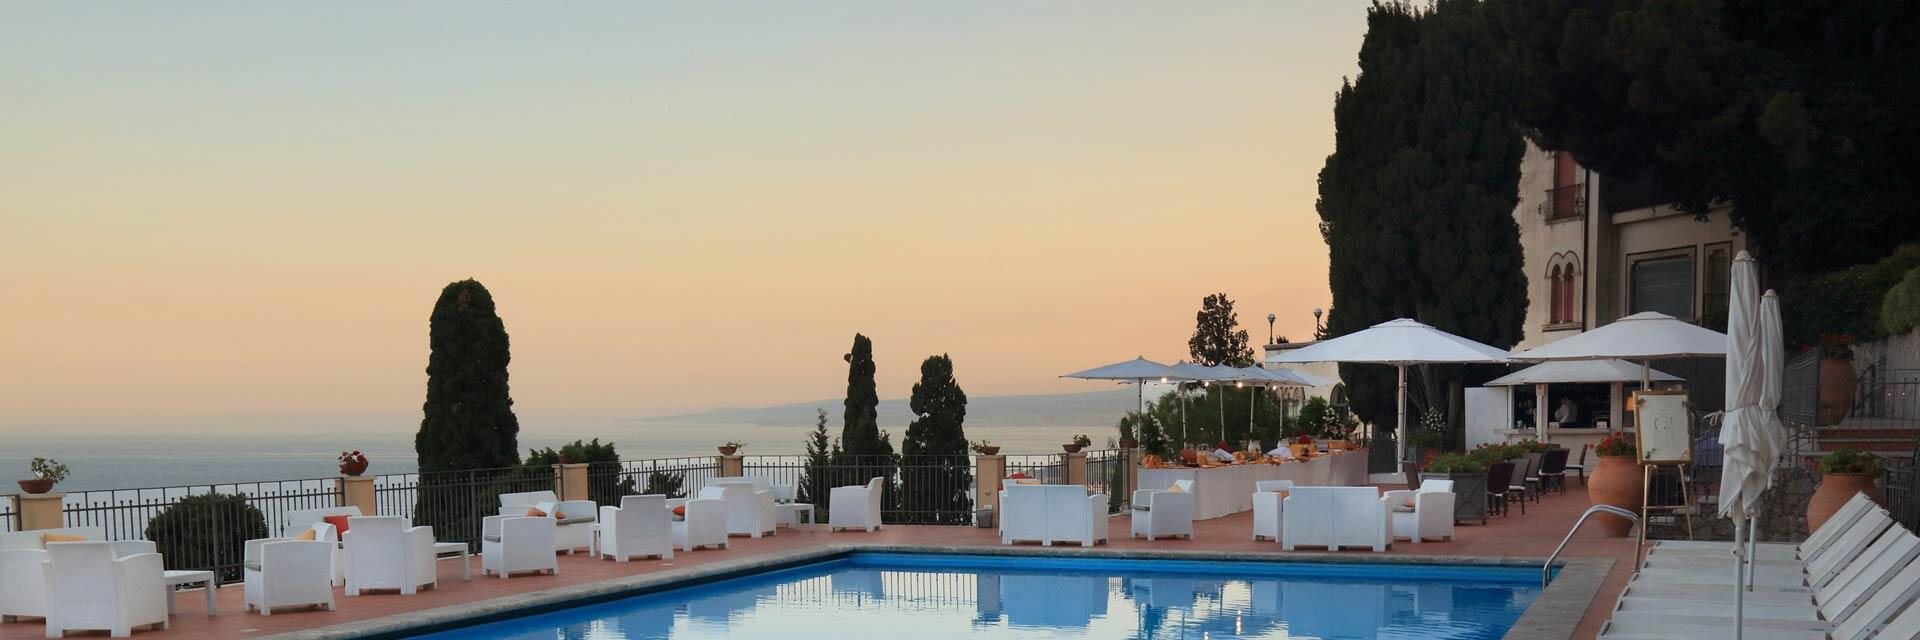 sanpietrotaormina en weekend-offer-luxury-5-star-hotel-in-taormina 012